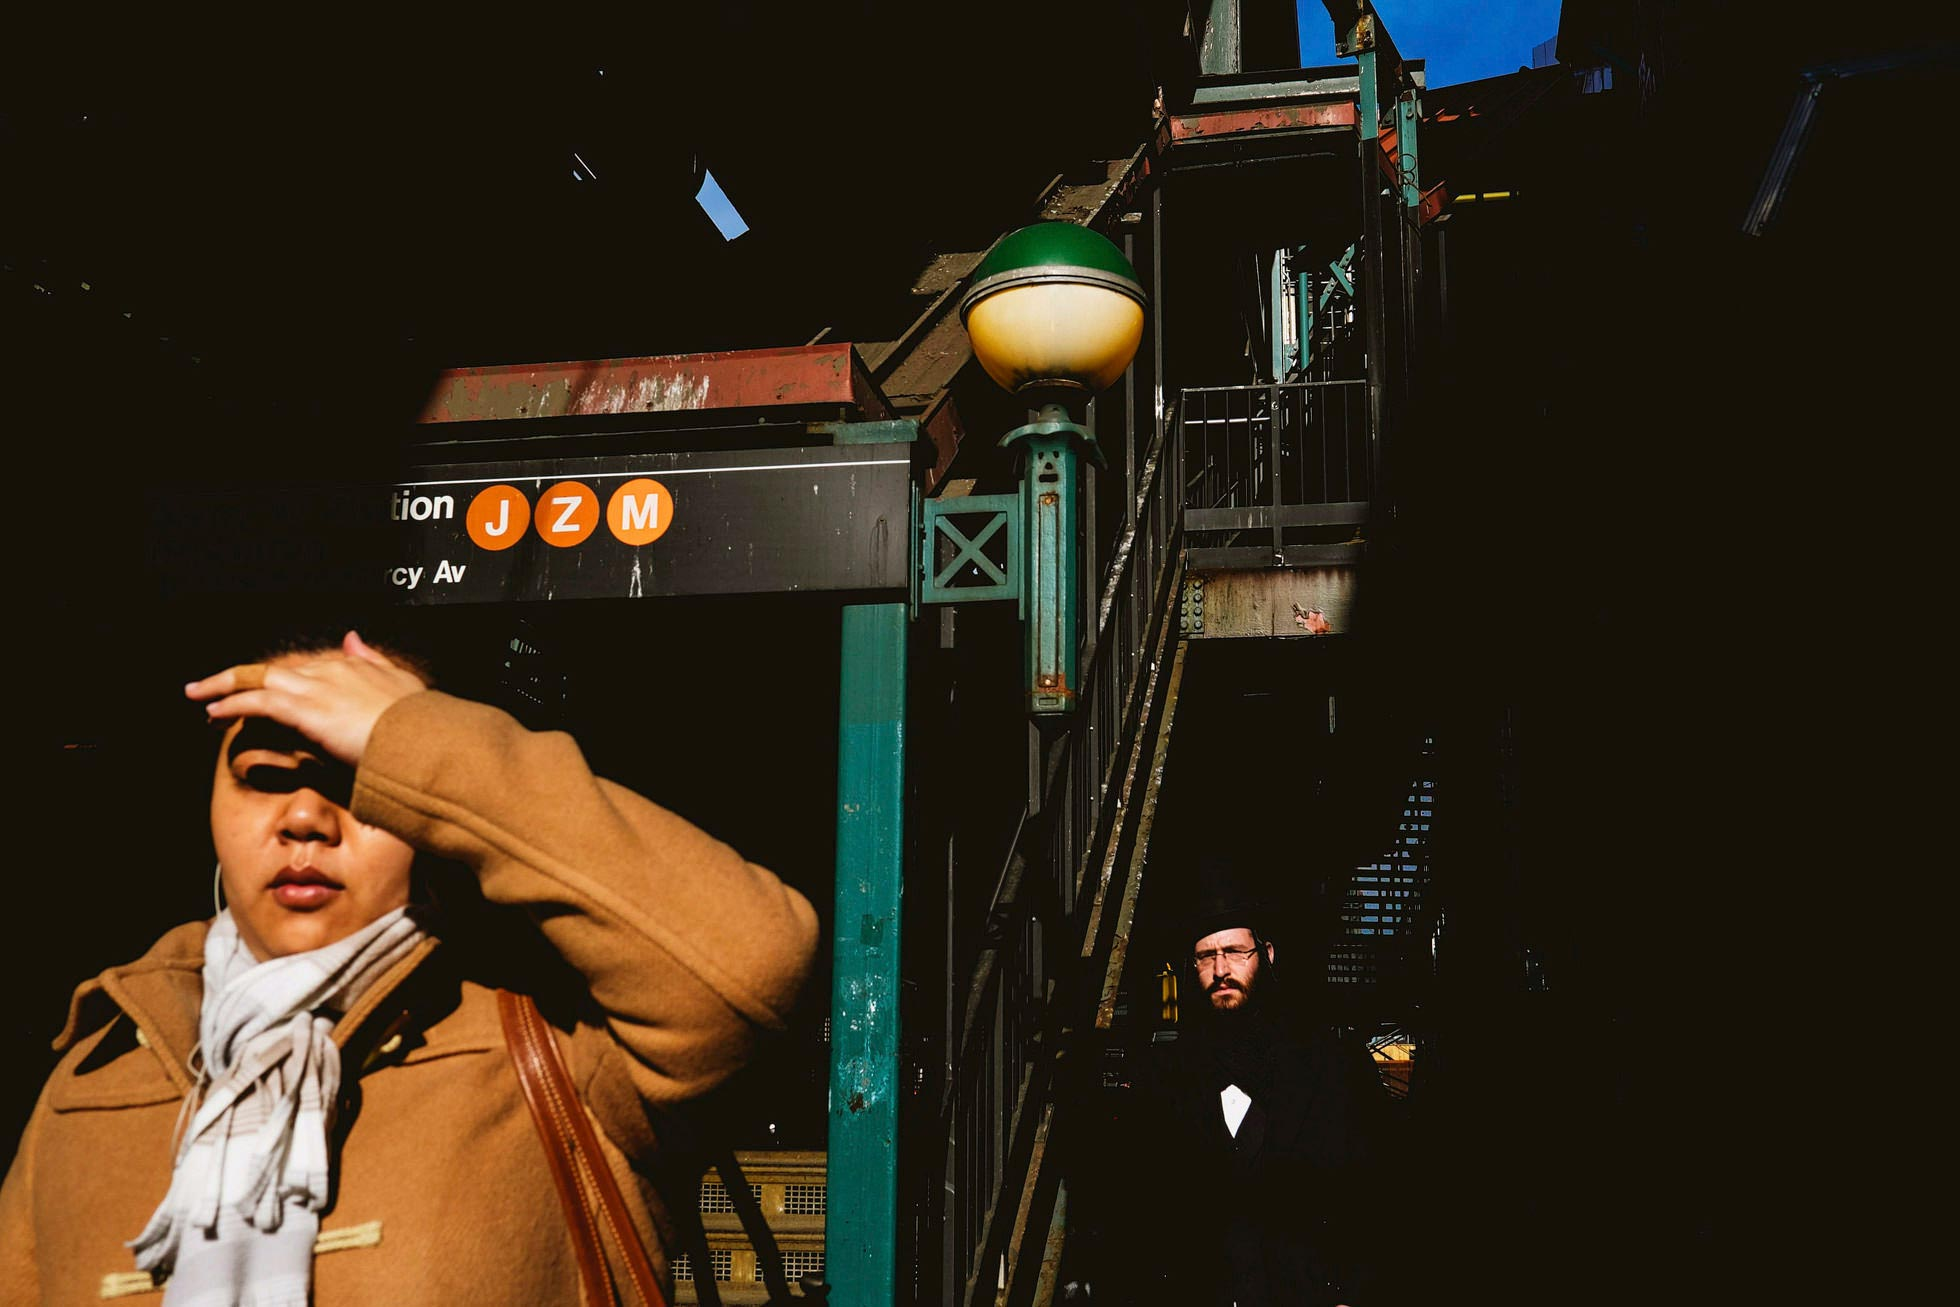 New York Street Photography with the Leica M 240